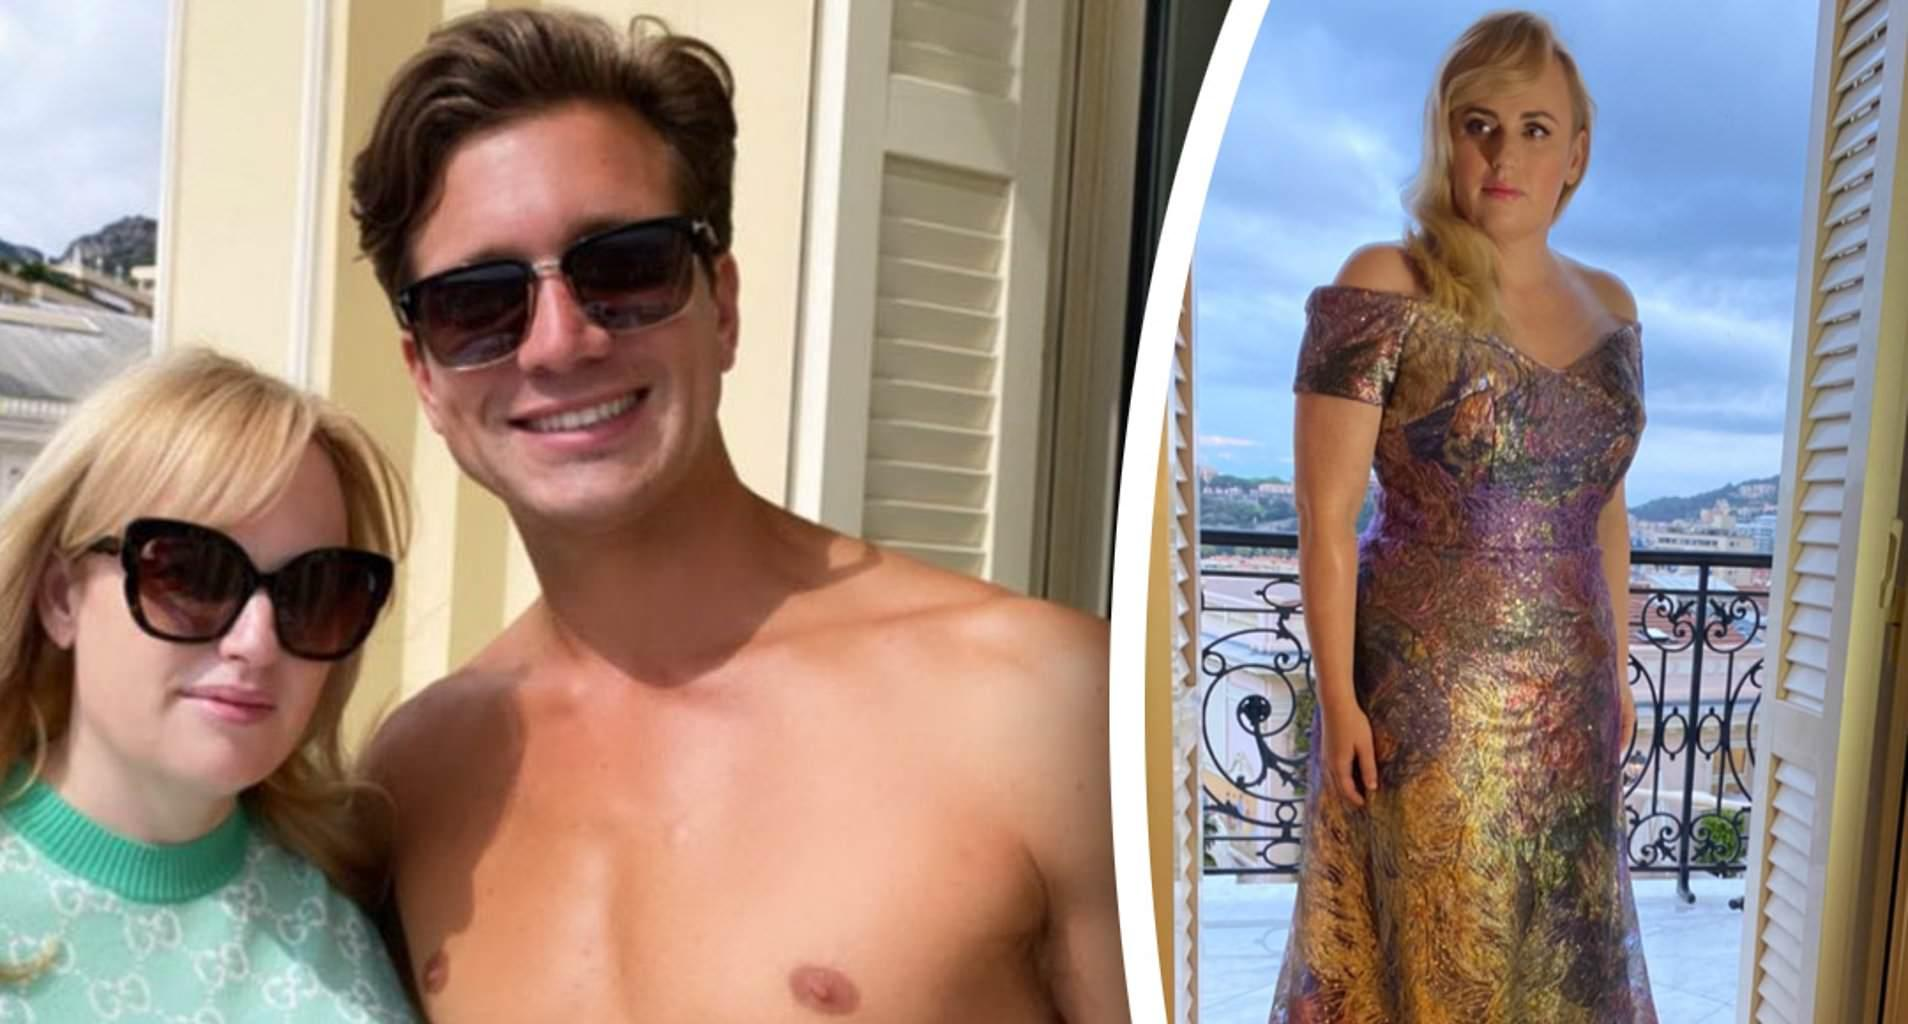 Rebel Wilson's Boyfriend Jacob Busch Loves How 'Fire' She Looks In This Plunging Green Swimsuit!